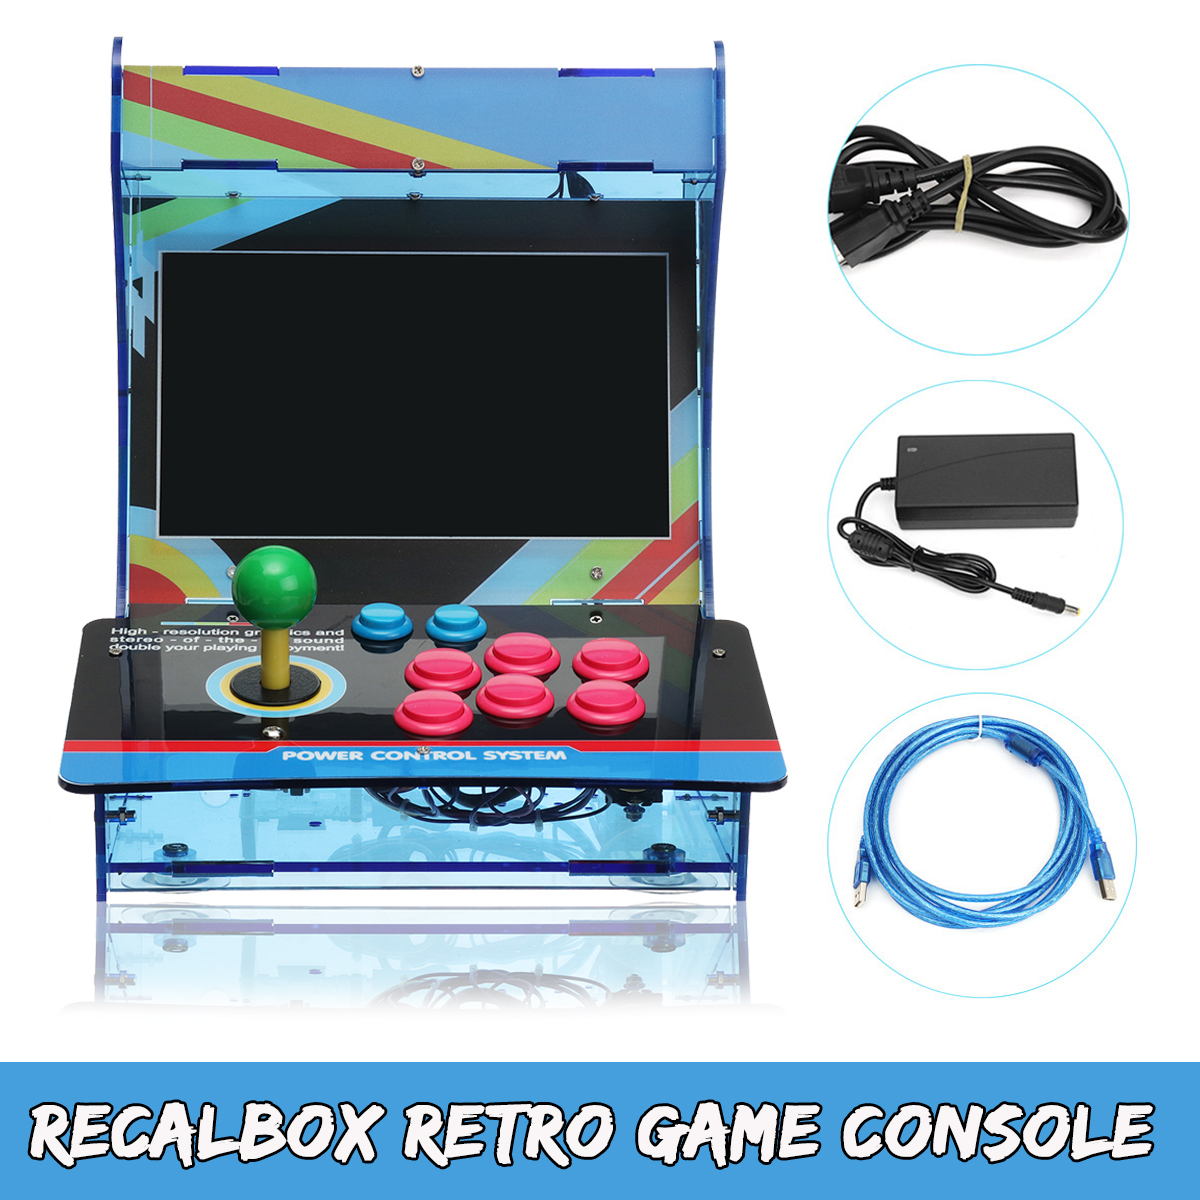 The Newest DIY Wireless Bluetooth Classic Arcade Game Console For RecalBox PS3/PC/LCD TV Home/Party/KTV/Bar Arcade Game Console цена и фото